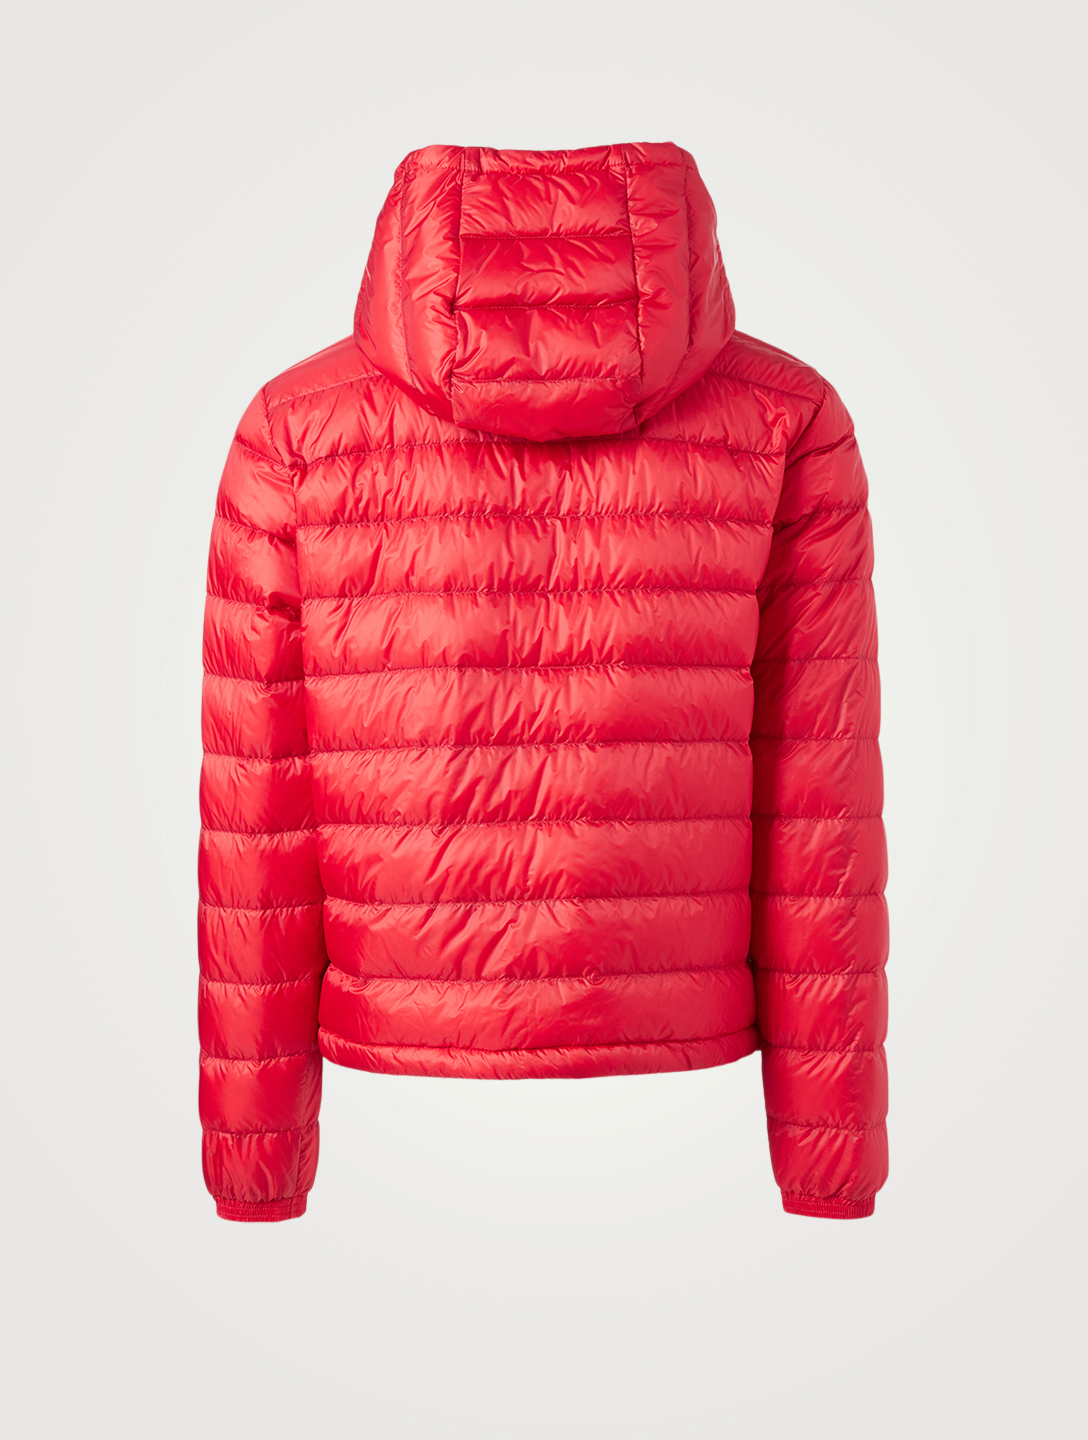 MONCLER Rook Quilted Jacket Men's Red